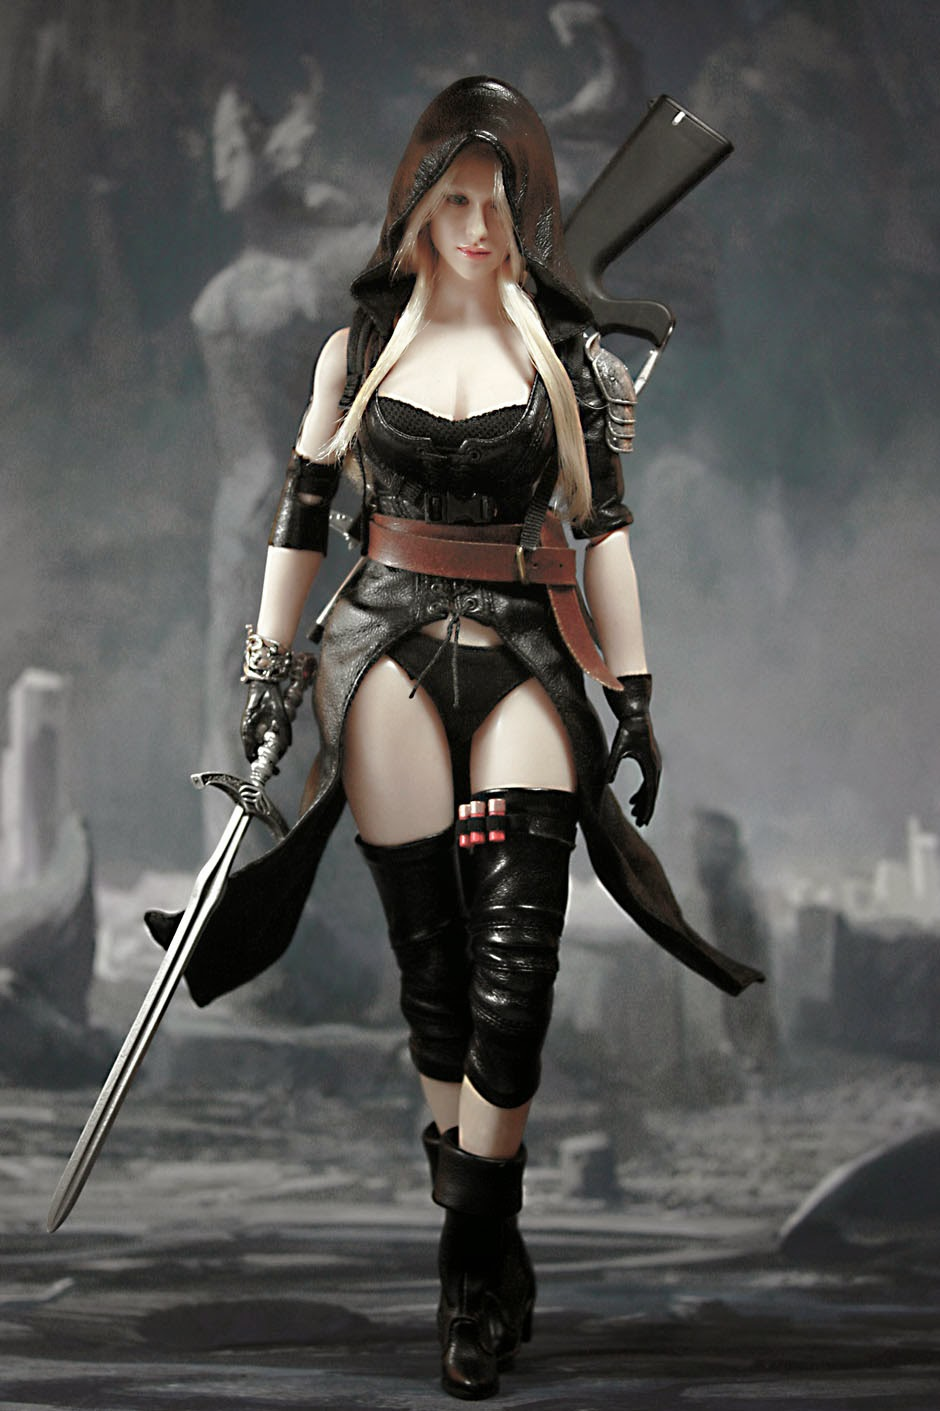 Hot Toys Babydoll Toyhaven Is Pop Toys Gf01 1 6th Girl Clan Series Ranger